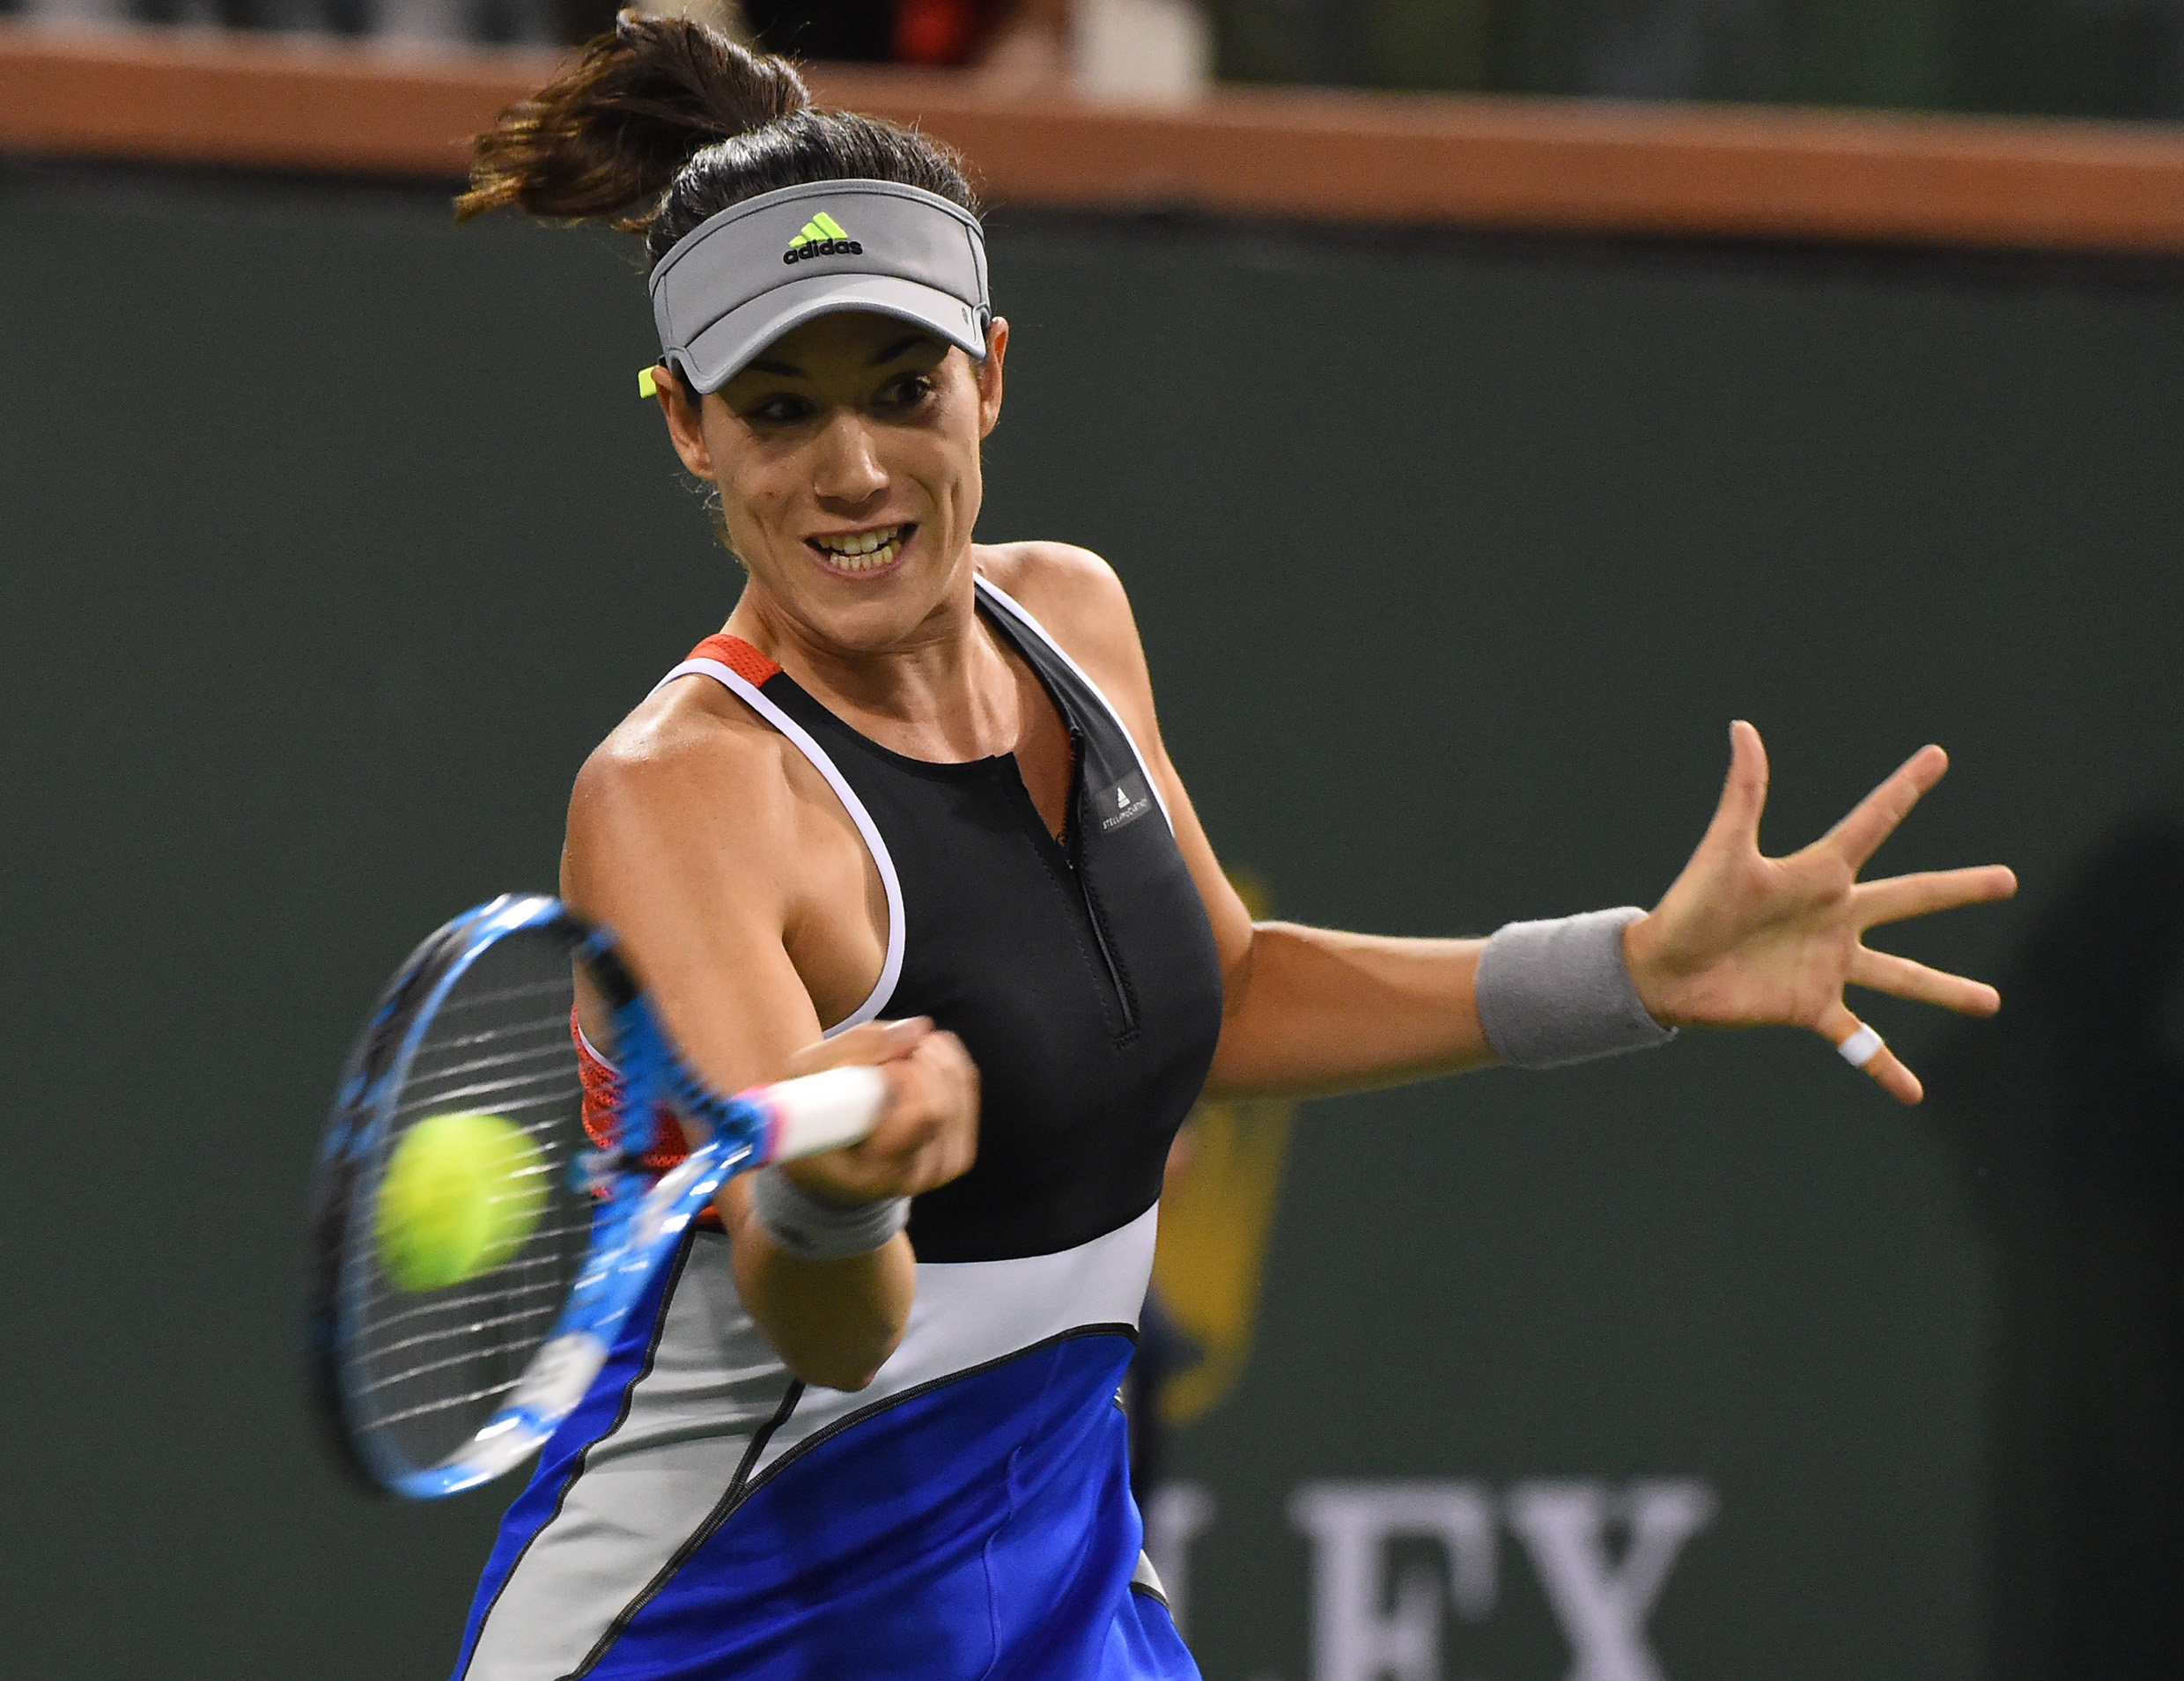 Mar 9, 2018; Indian Wells, CA, USA; Garbine Muguruza (ESP) during her second round match against Sachia Vickery (not pictured) in the BNP Open at the Indian Wells Tennis Garden. Mandatory Credit: Jayne Kamin-Oncea-USA TODAY Sports